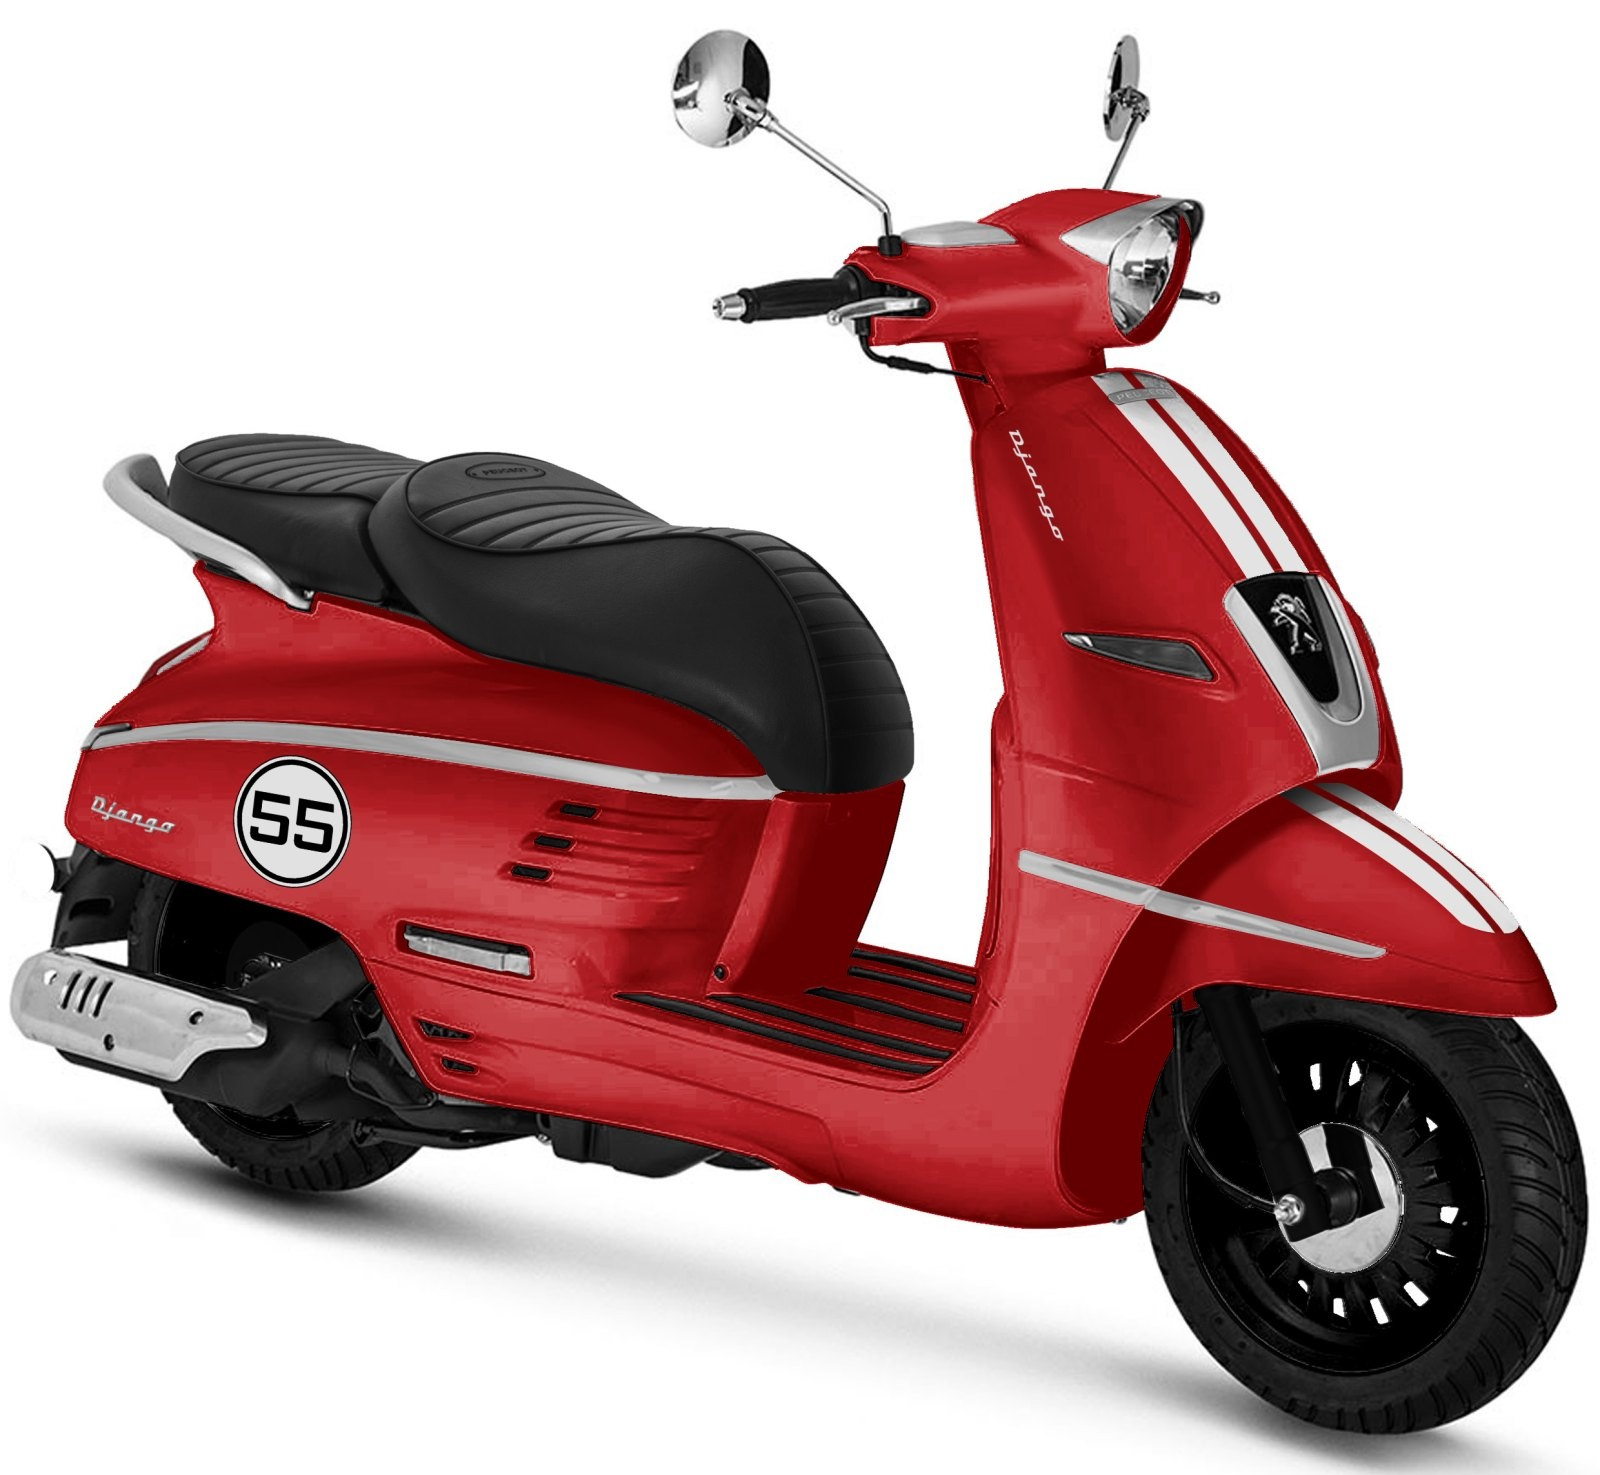 Django 125i Sport - Satin Cherry Red